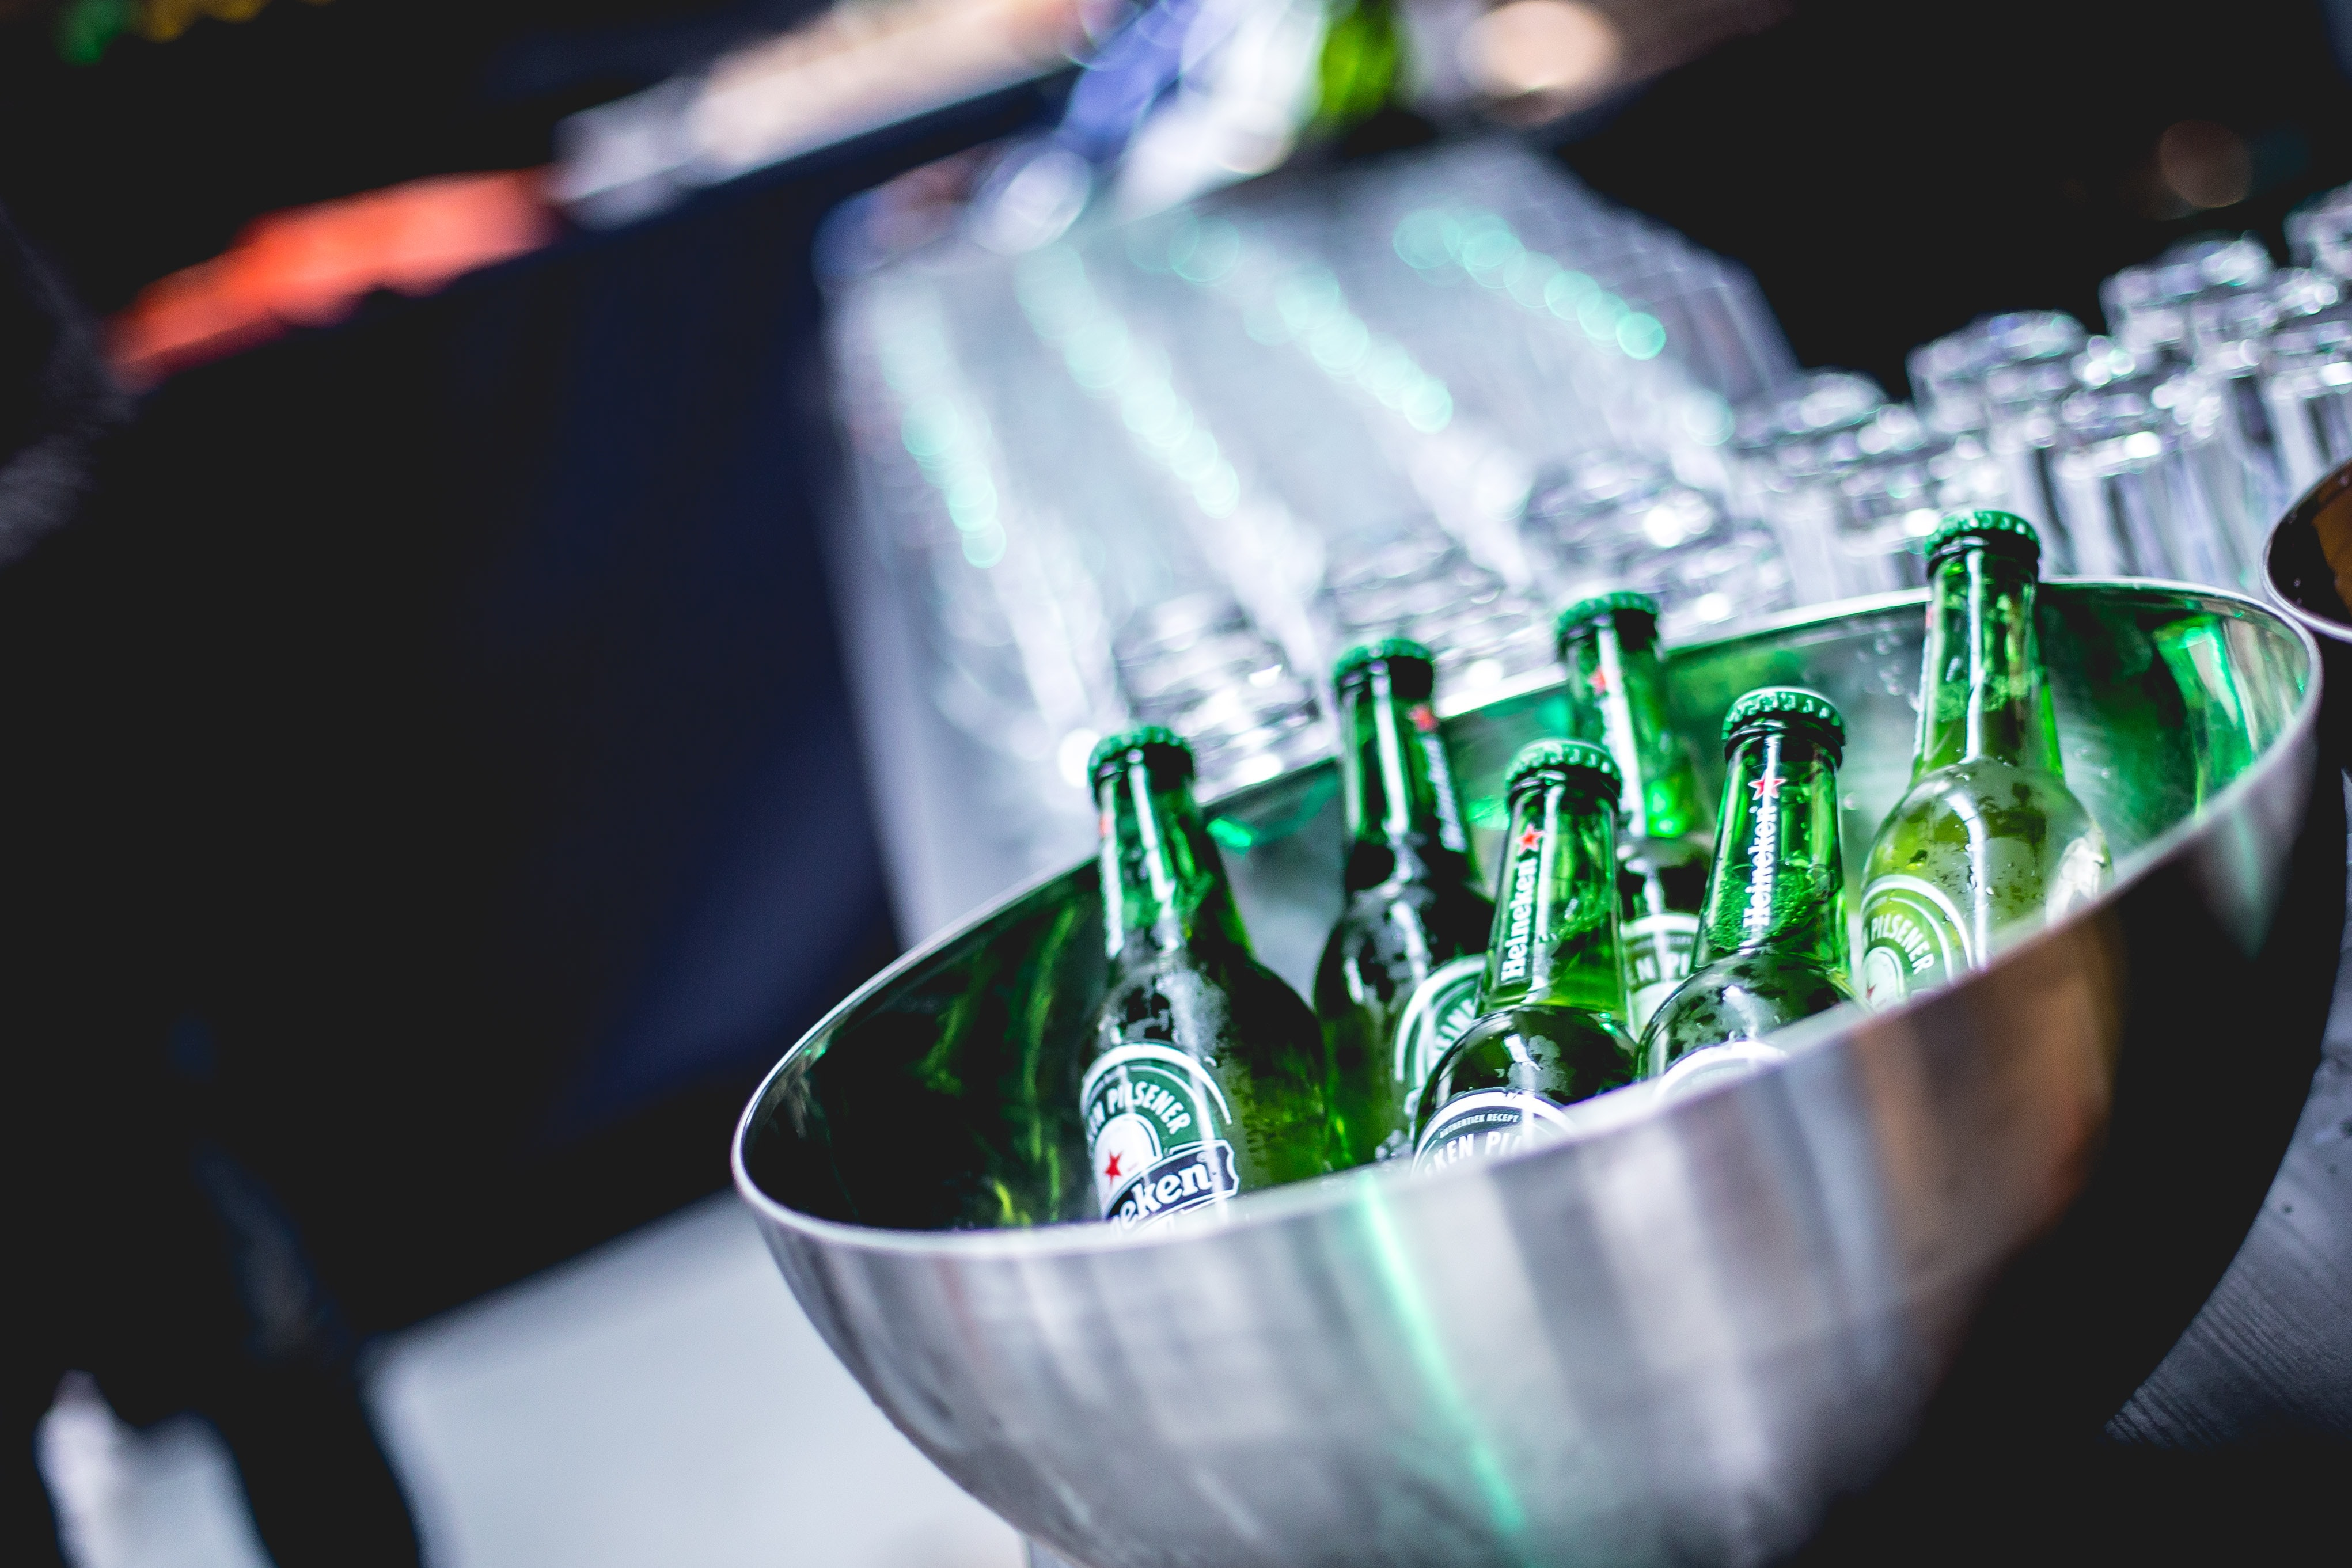 Heineken glass beer drinks in a stainless bowl in a bar